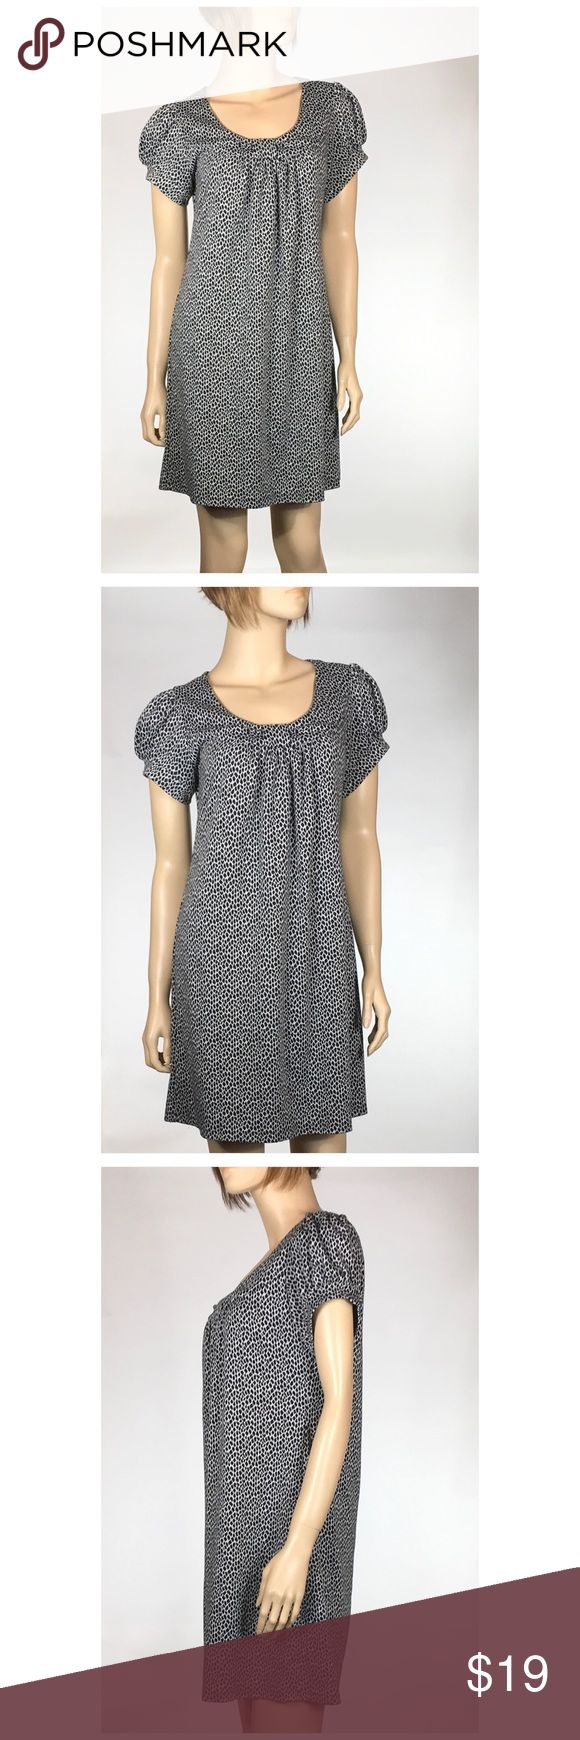 Enfocus Studio Animal Print Dress or Tunic Black and gray short-sleeved dress is a size 12. 33 inches long. Chest measures 18.5 inches across from armpit to armpit. 82% polyester 16% rayon 2% spandex. It has quite a bit of stretch to it and is in excellent condition. Enfocus Studio Dresses